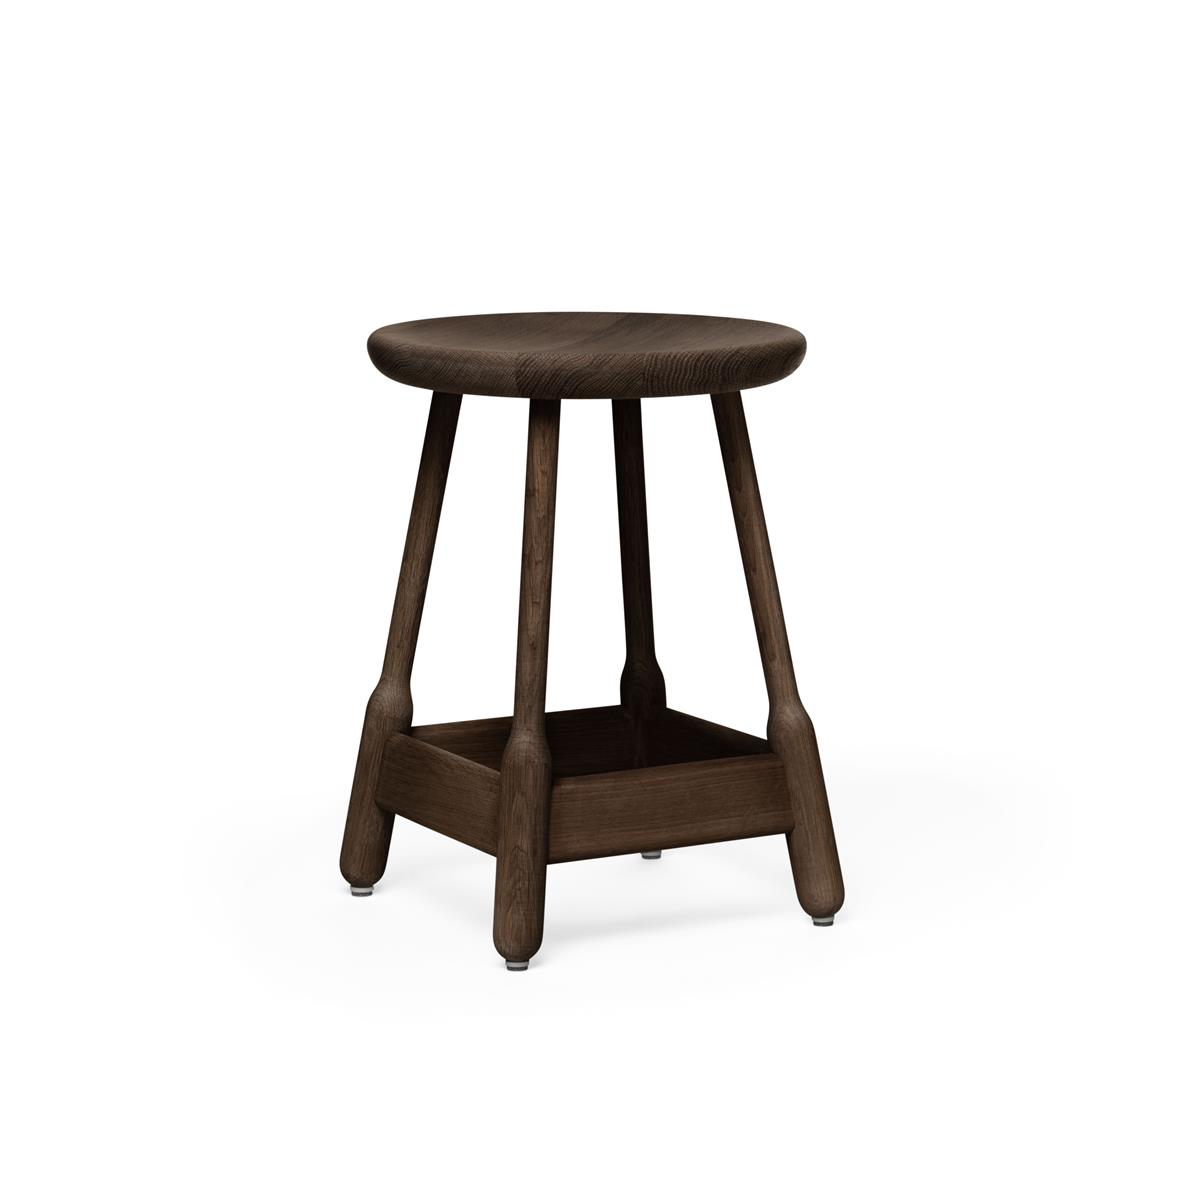 Albert Stool H50 - Walnut Stained